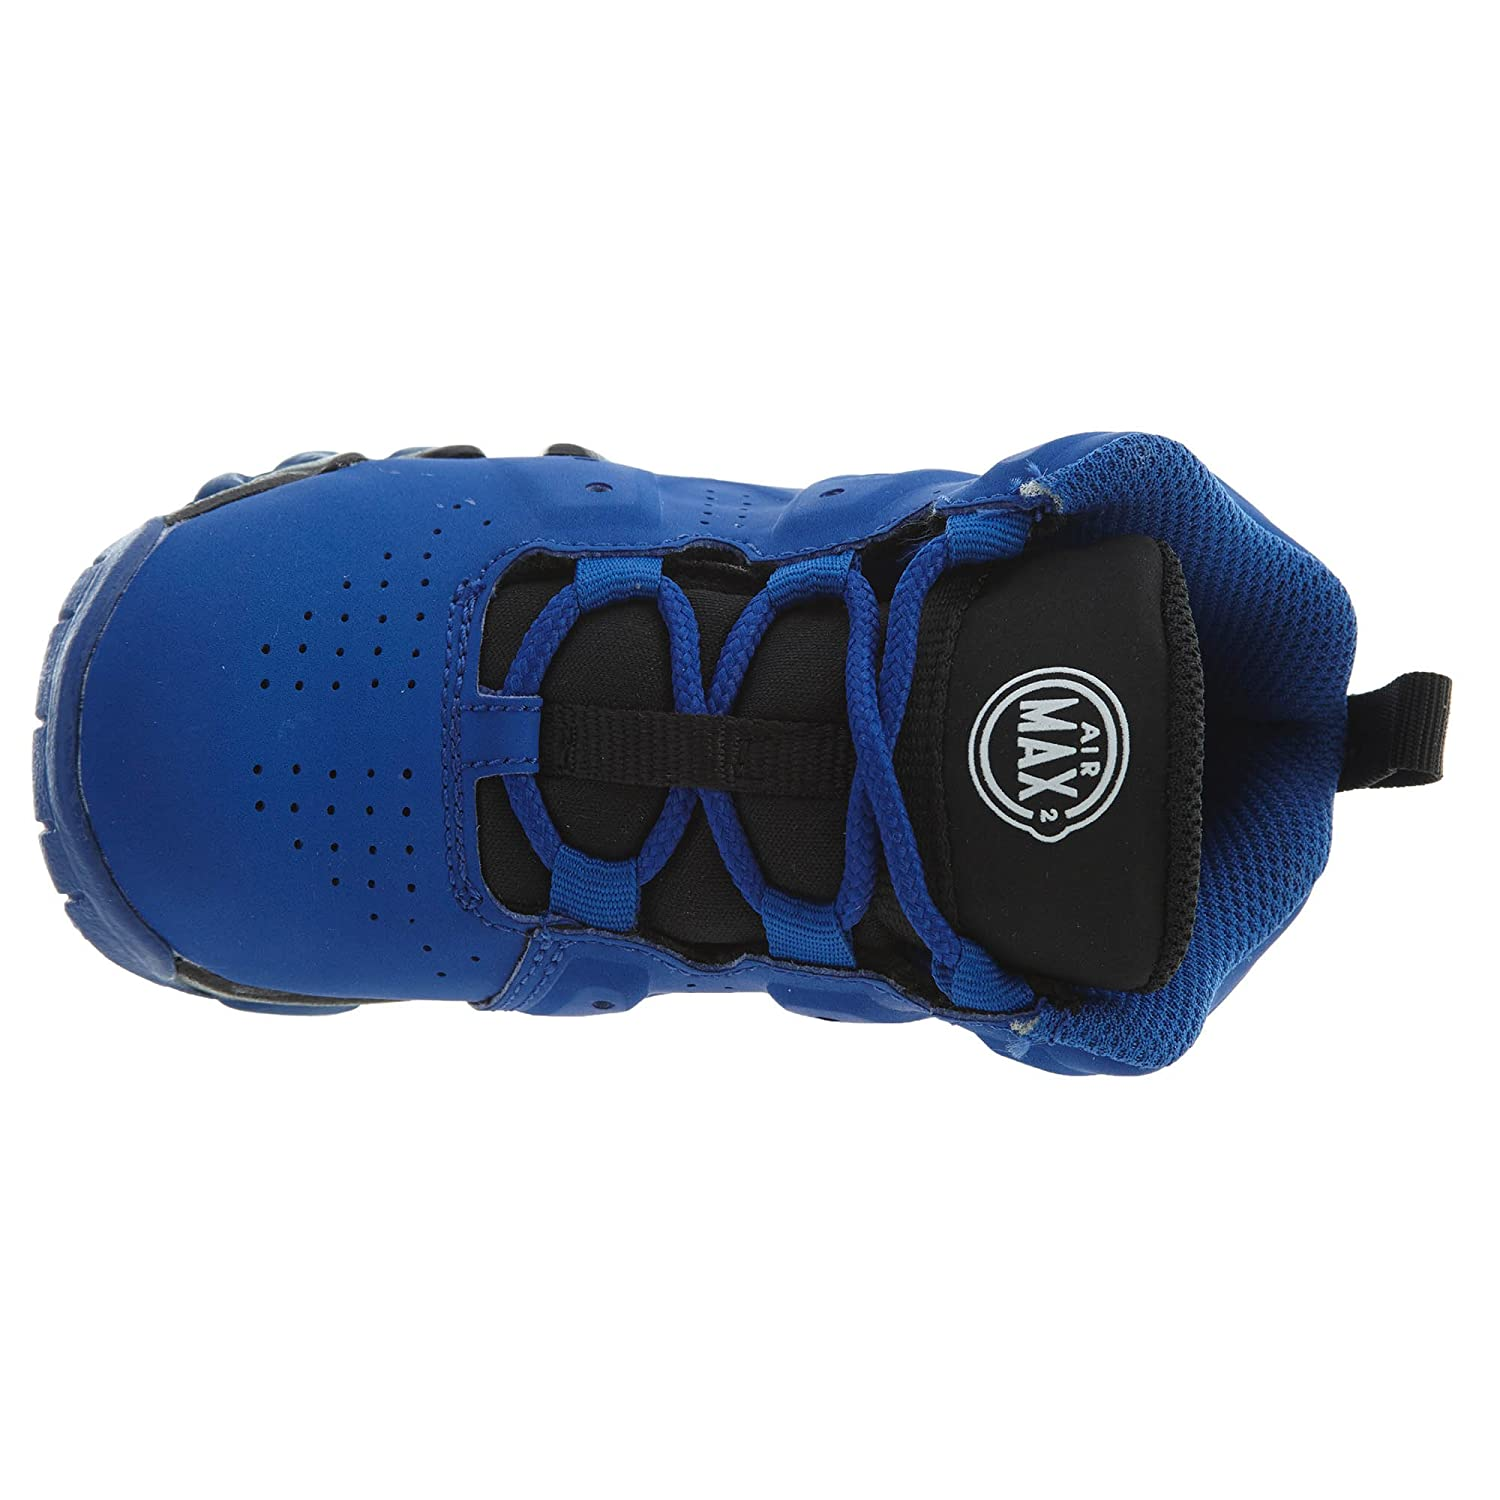 01b2804573 Amazon.com: NIKE Air Max Barkley (Td) Toddlers Style 488247: Shoes